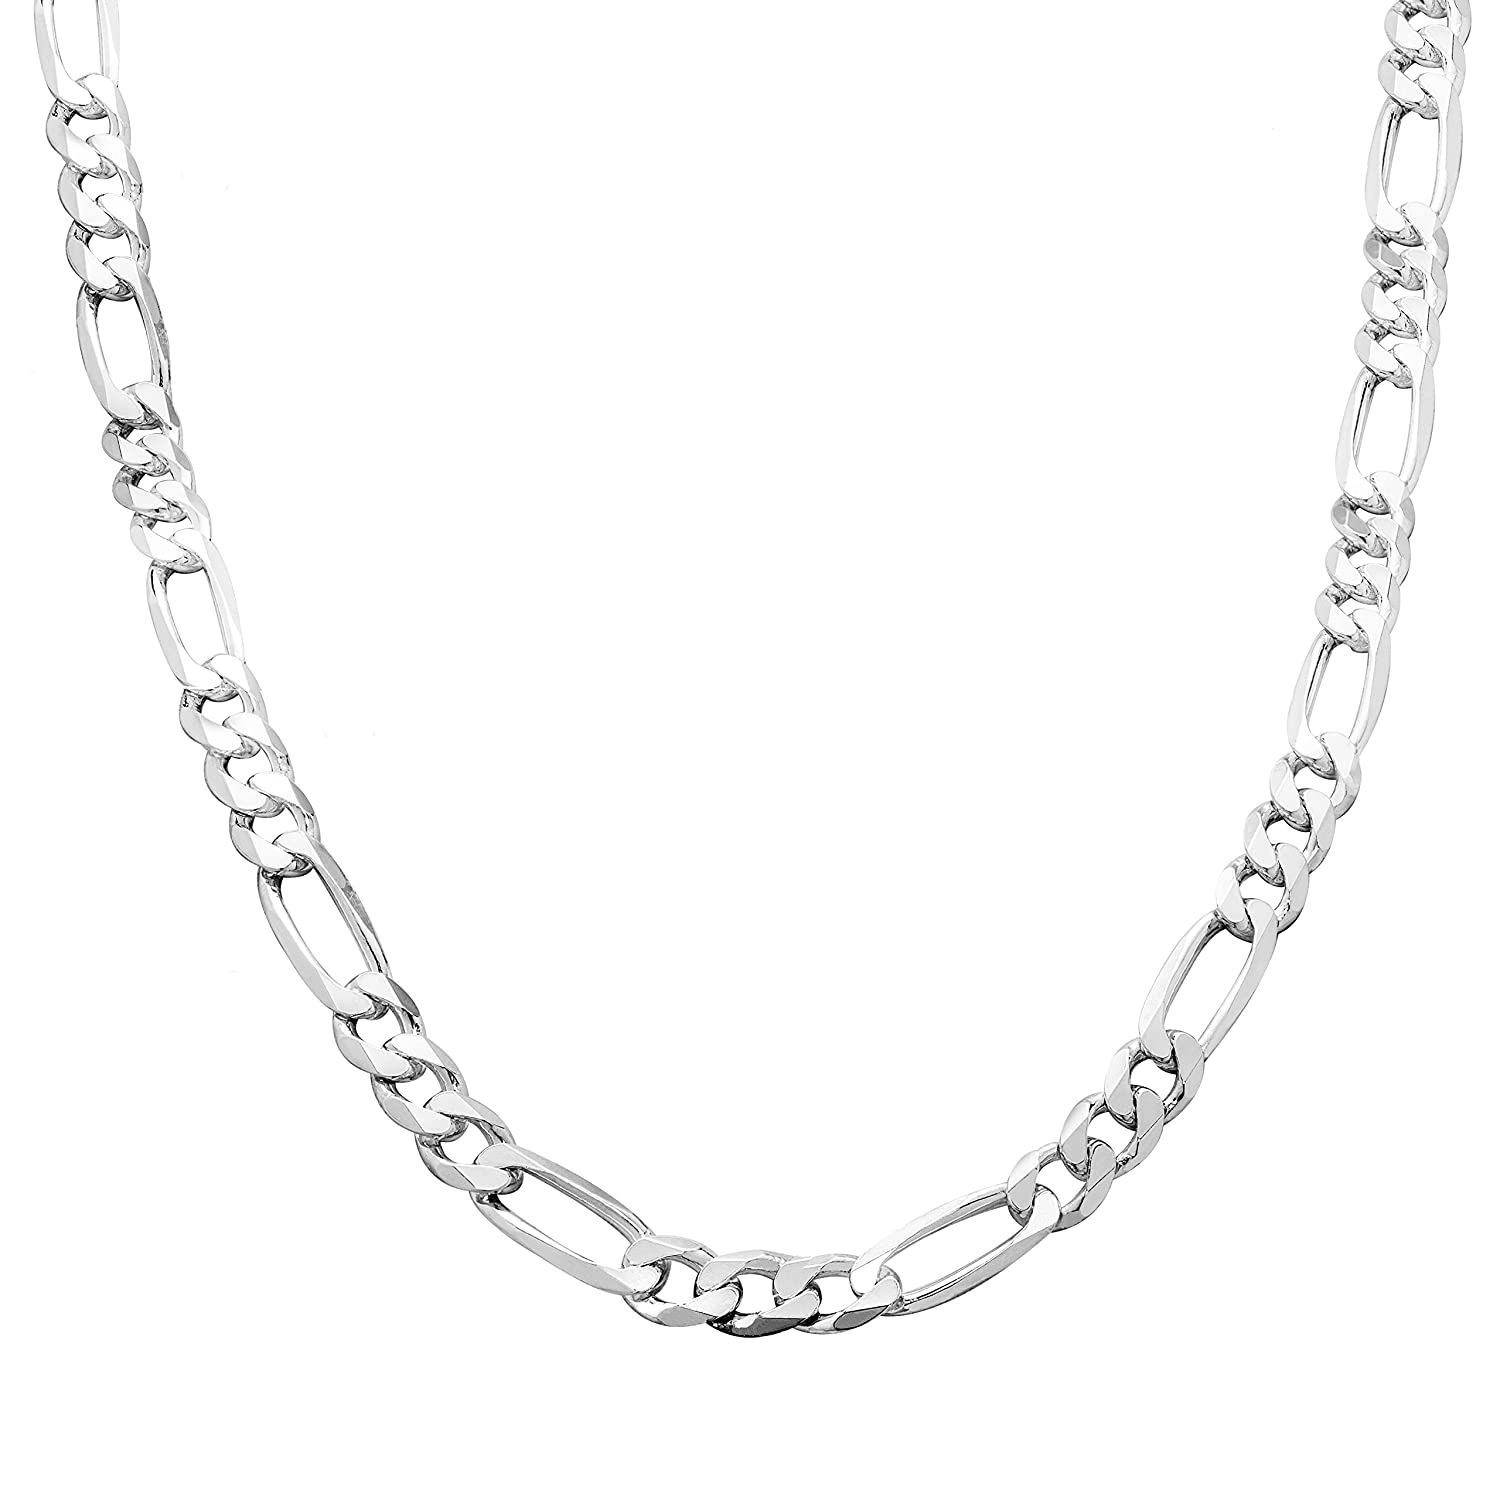 Honolulu Jewelry Company Sterling Silver 4mm 7.5mm Figaro Link Chain Necklace or Bracelet 7.5-28